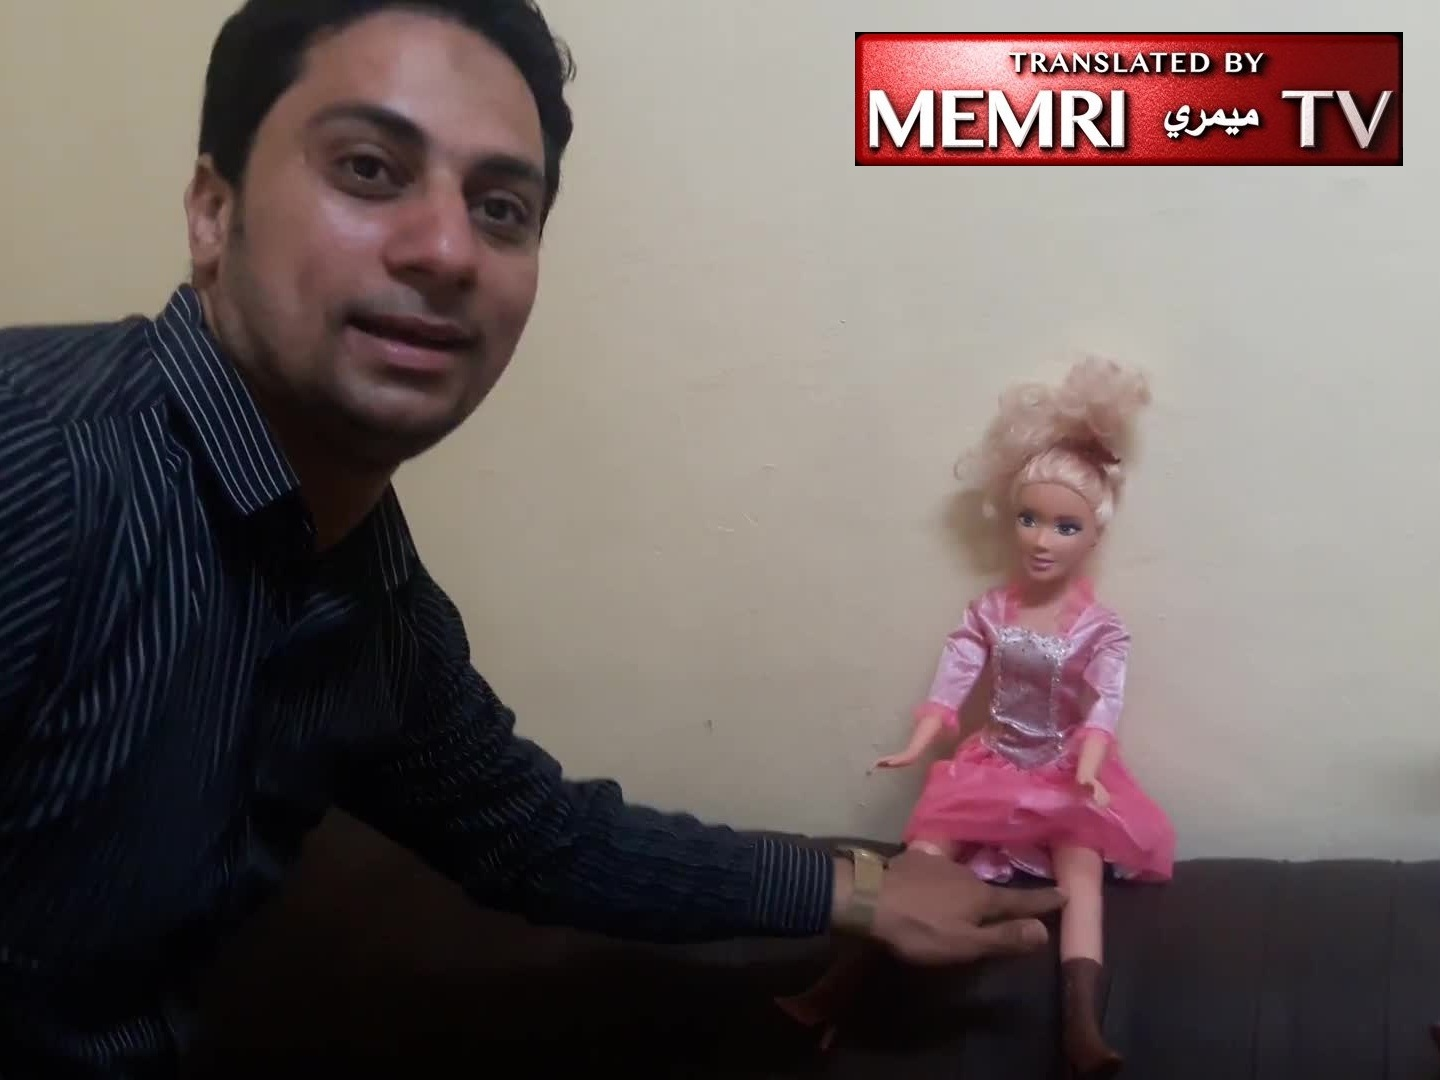 Egyptian Human Rights Activist Demonstrates on Dolls How Men Harass Women, and Vice Versa